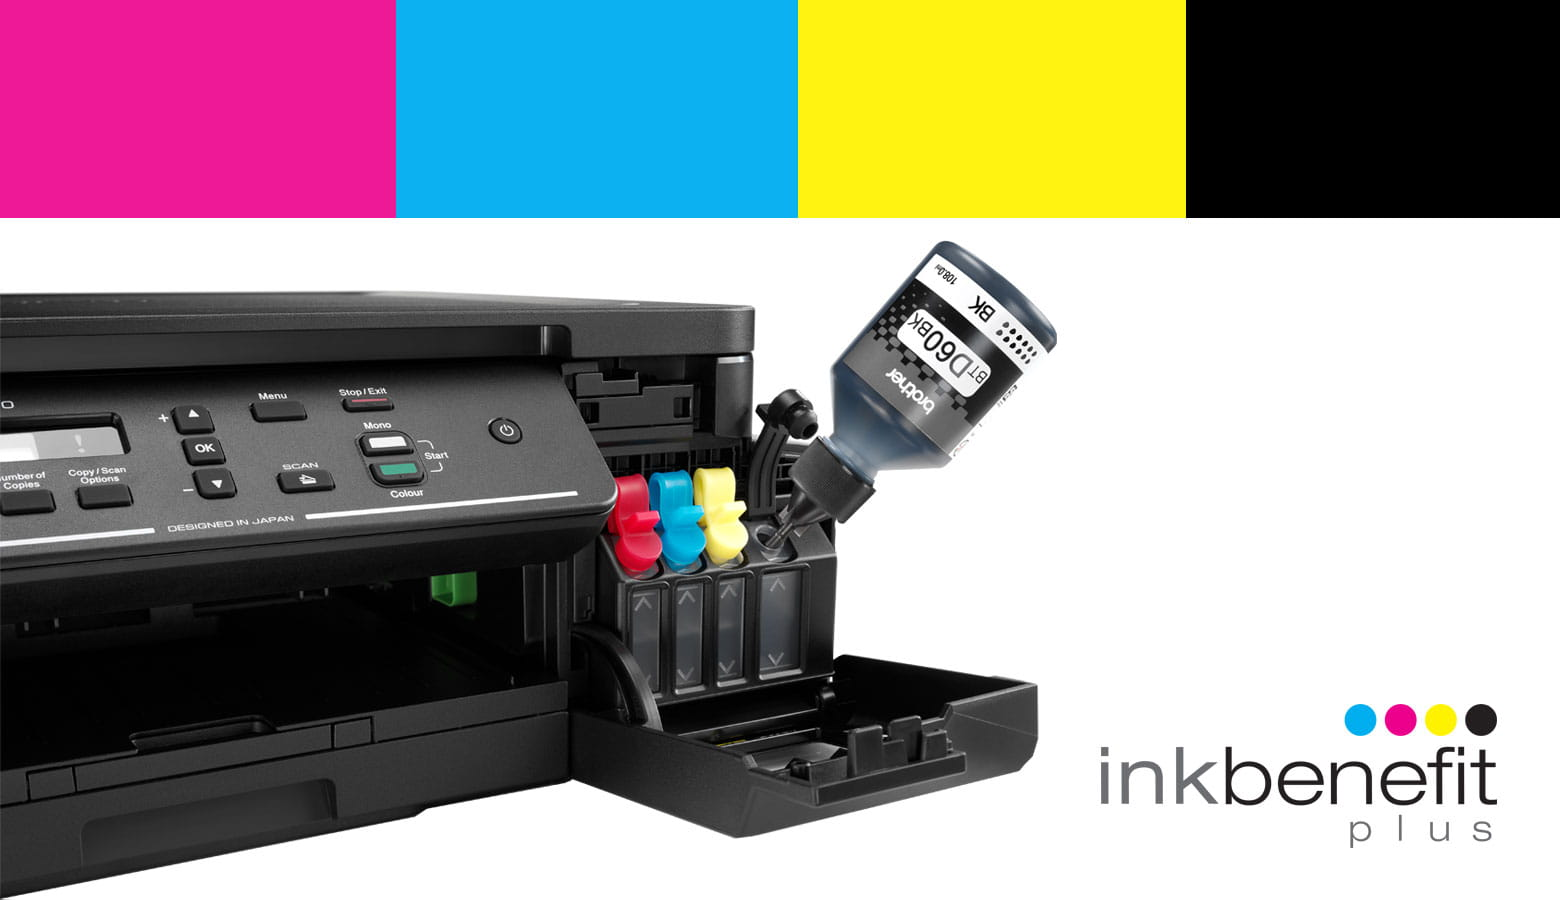 InkBenefit Plus Inkjet Printer MFC-T910DW with black ink